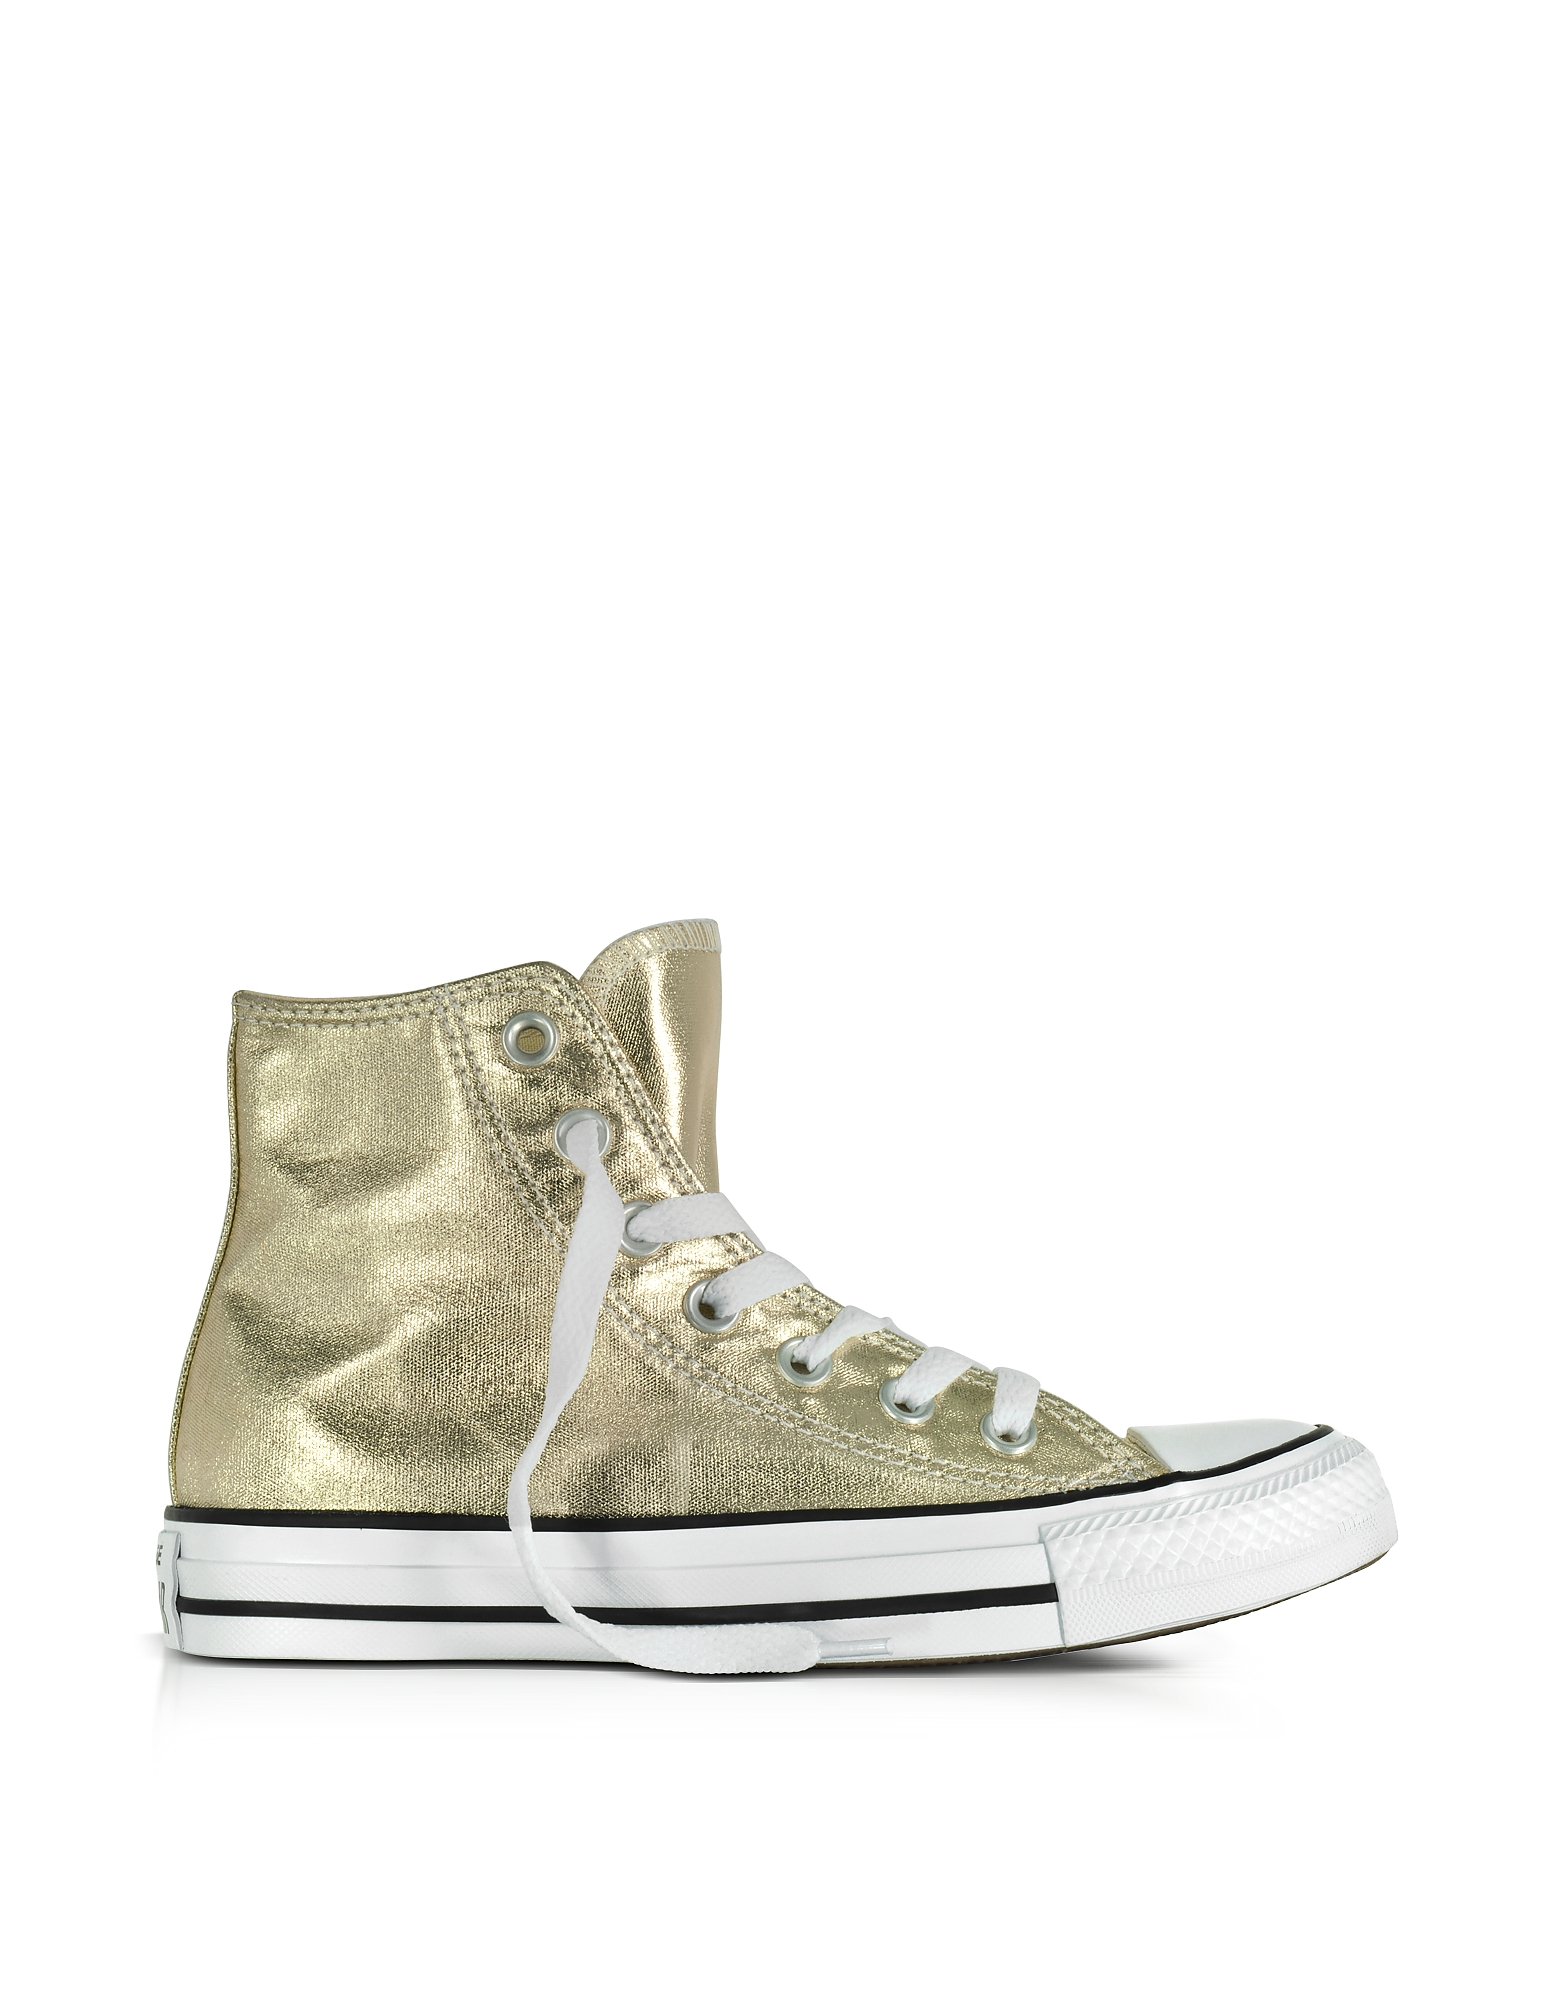 Converse Limited Edition Shoes, Chuck Taylor High Metallic Canvas Sneakers